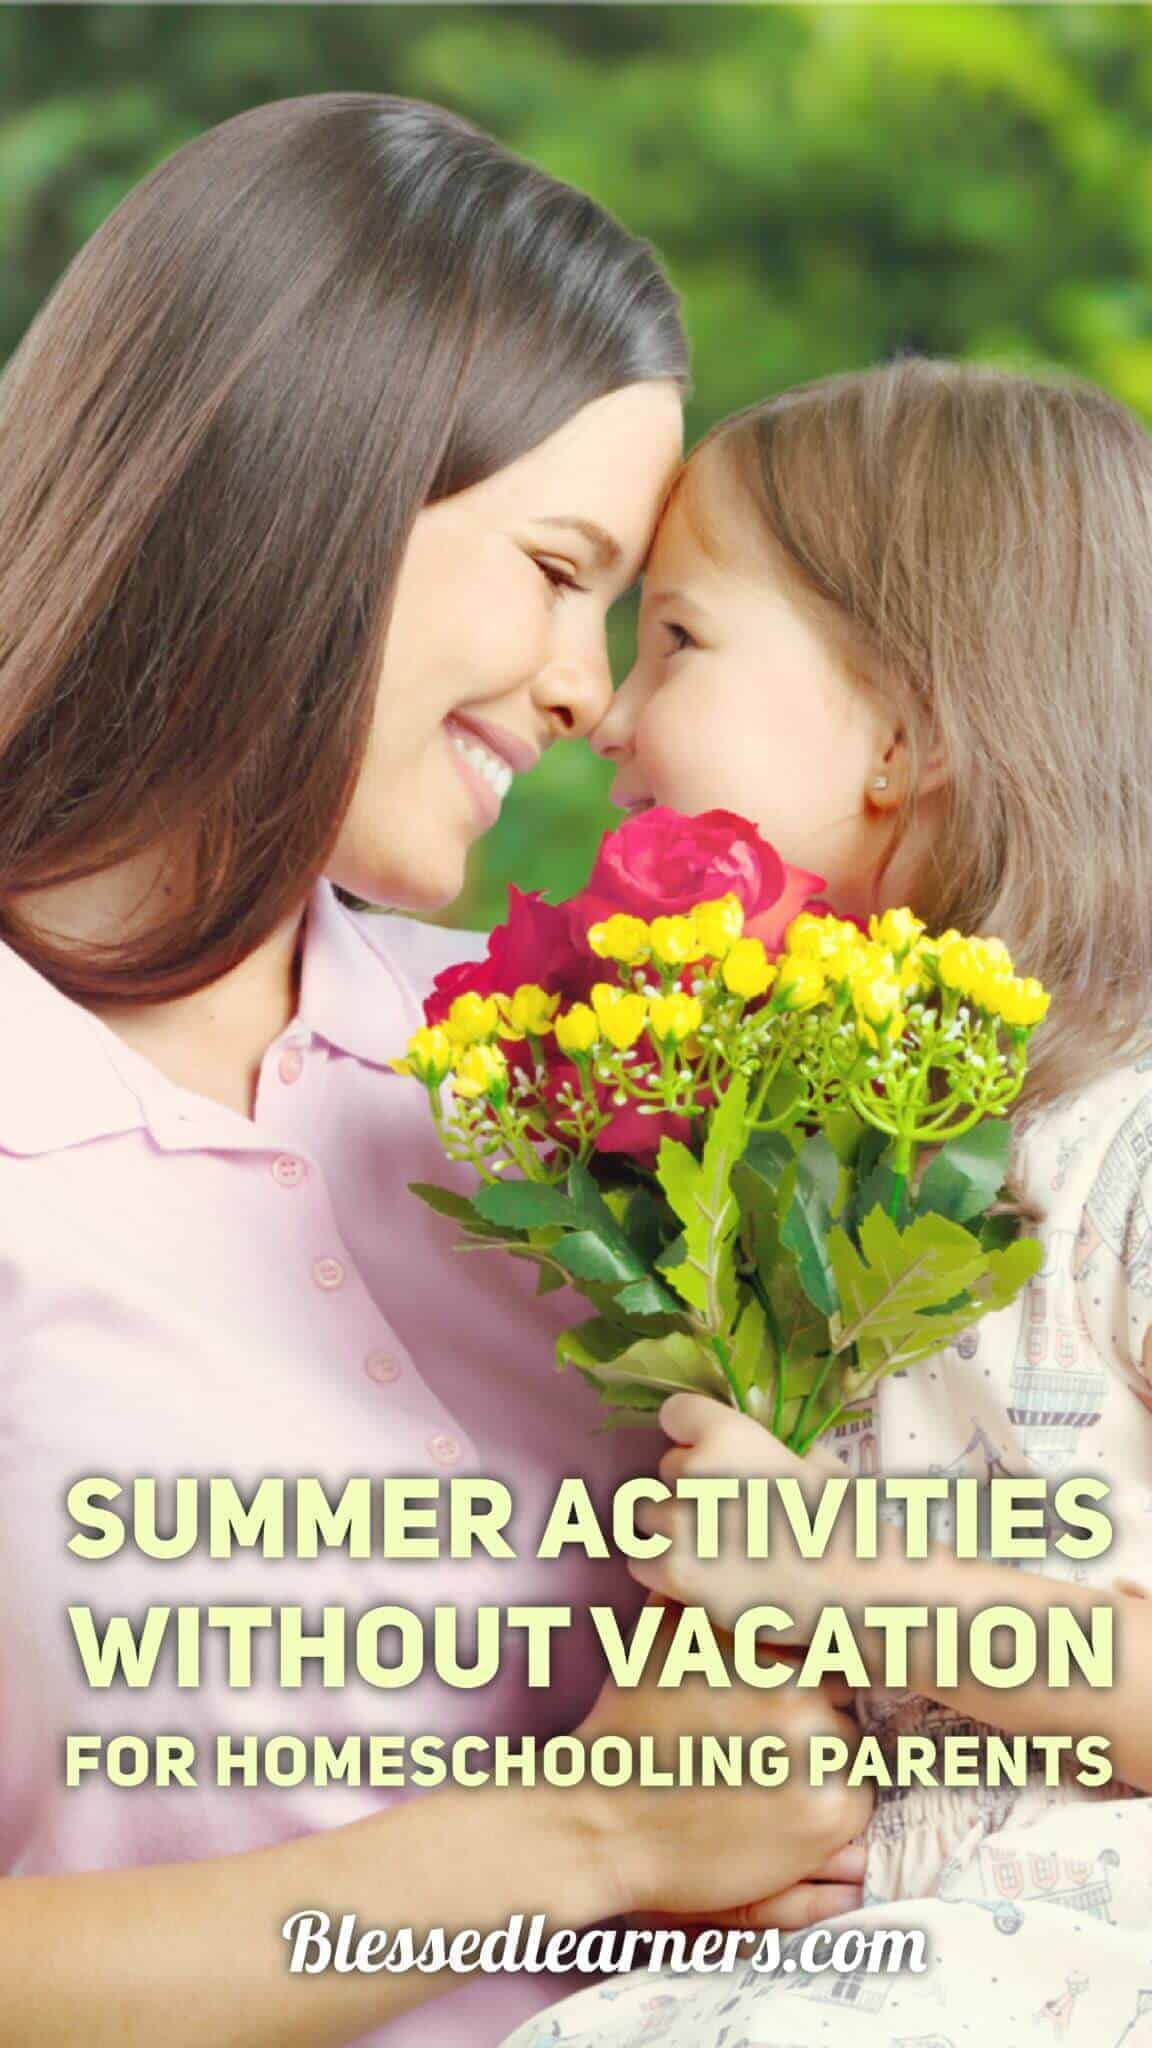 Summer Activities without Vacation for Homeschooling Parents